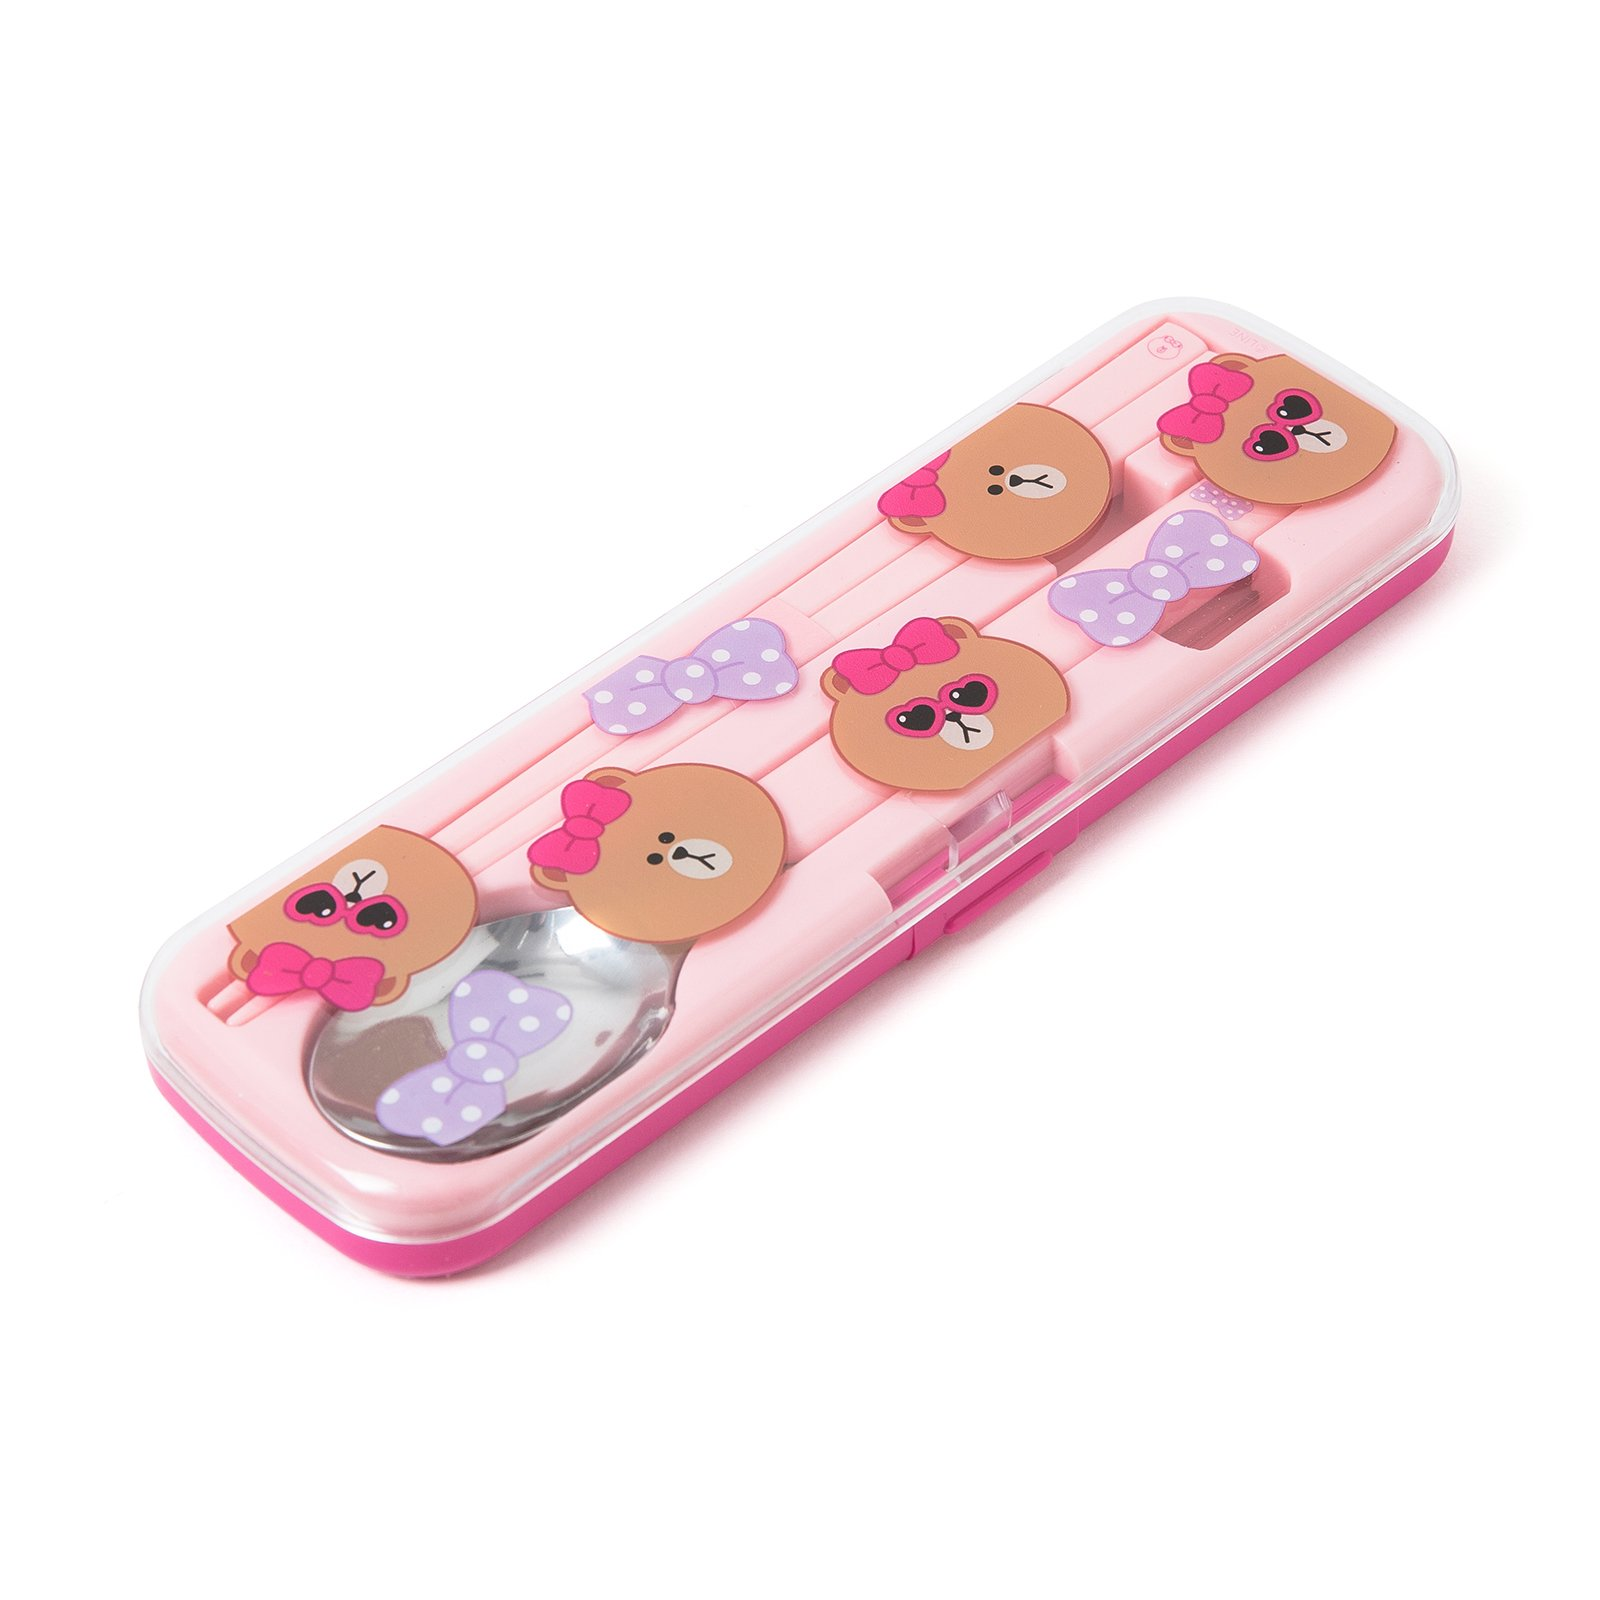 LINE FRIENDS Choco Spoon and Chopsticks Set One Size Pink